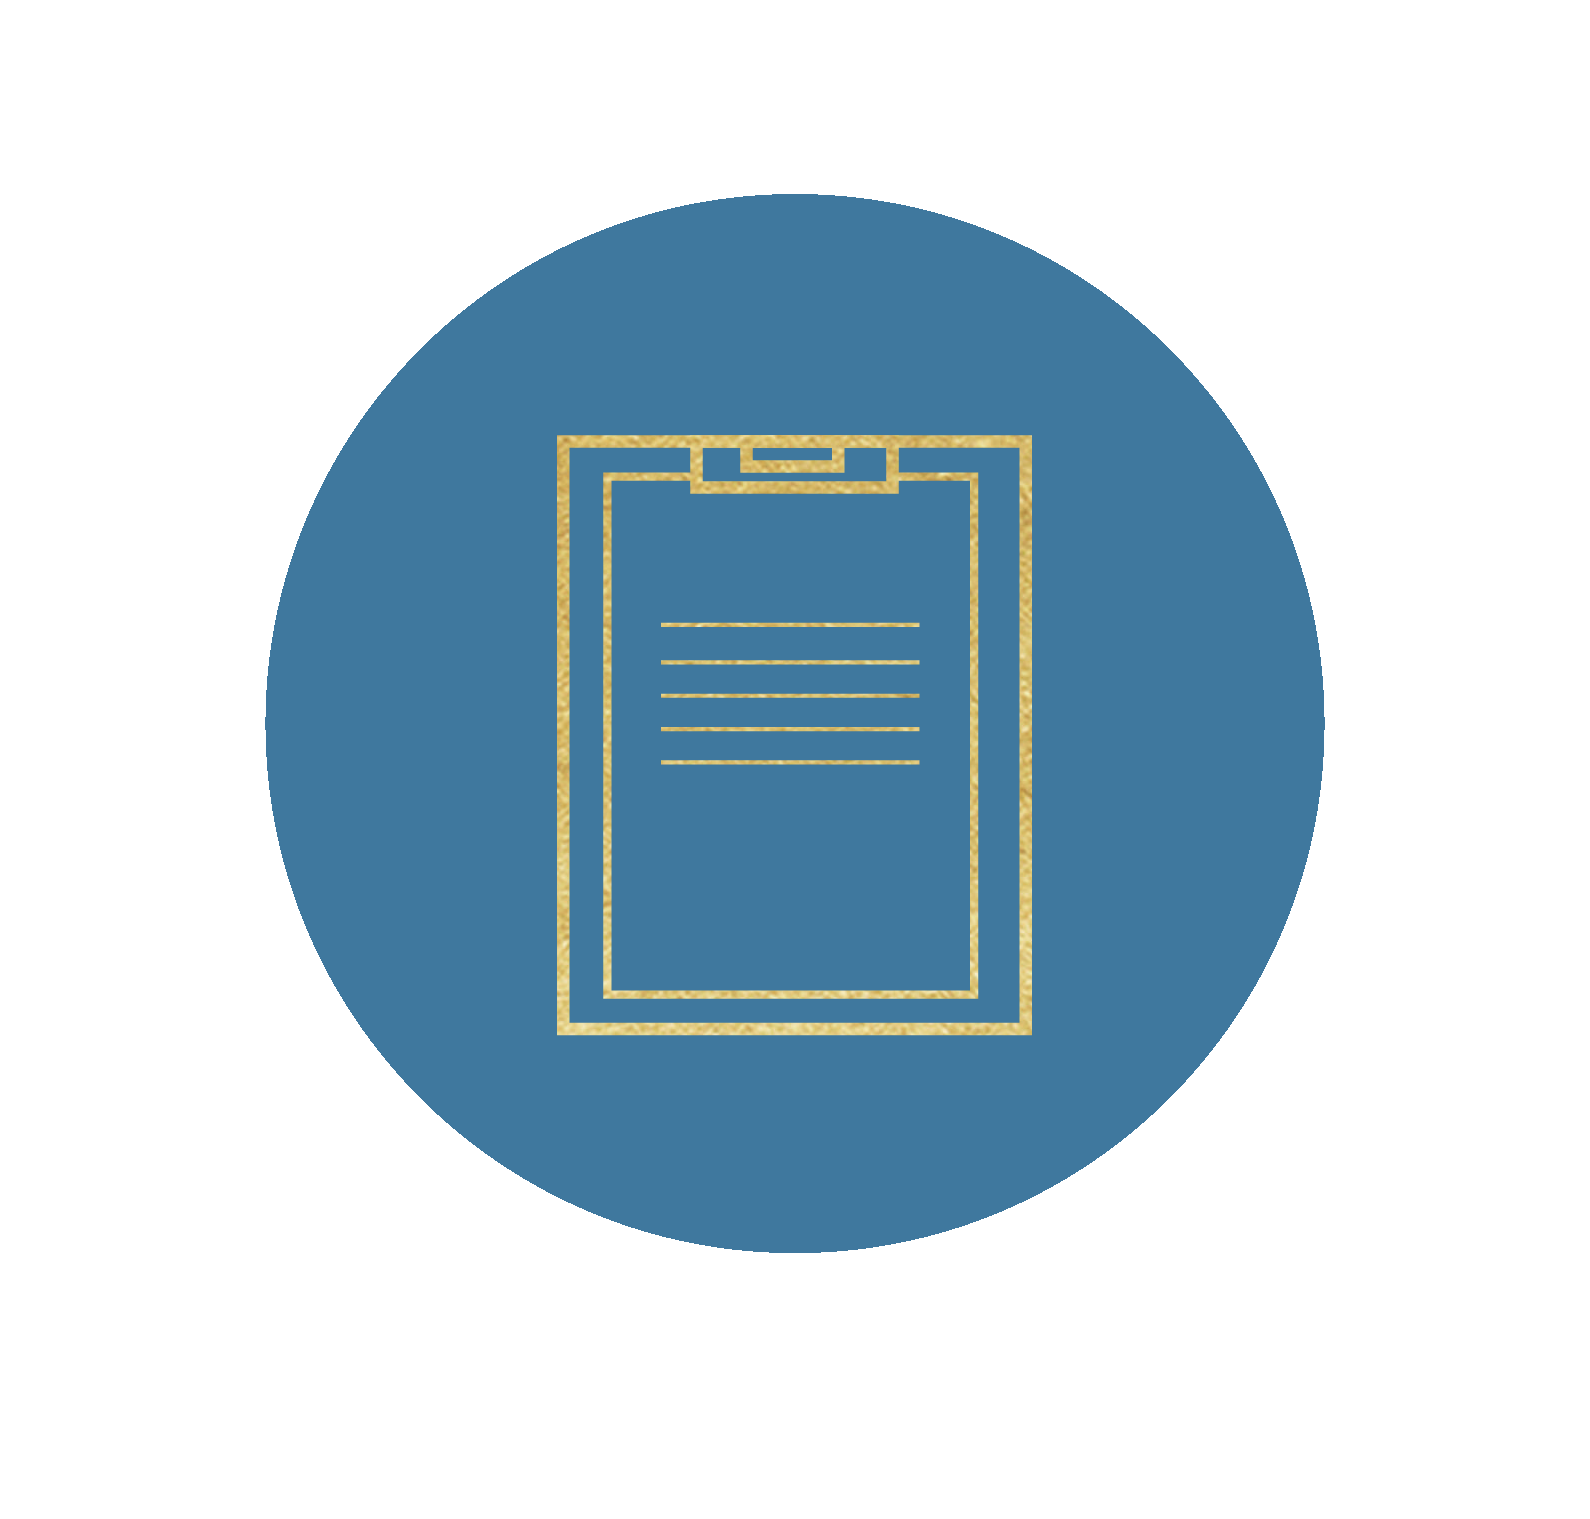 clipboard icon kk.png